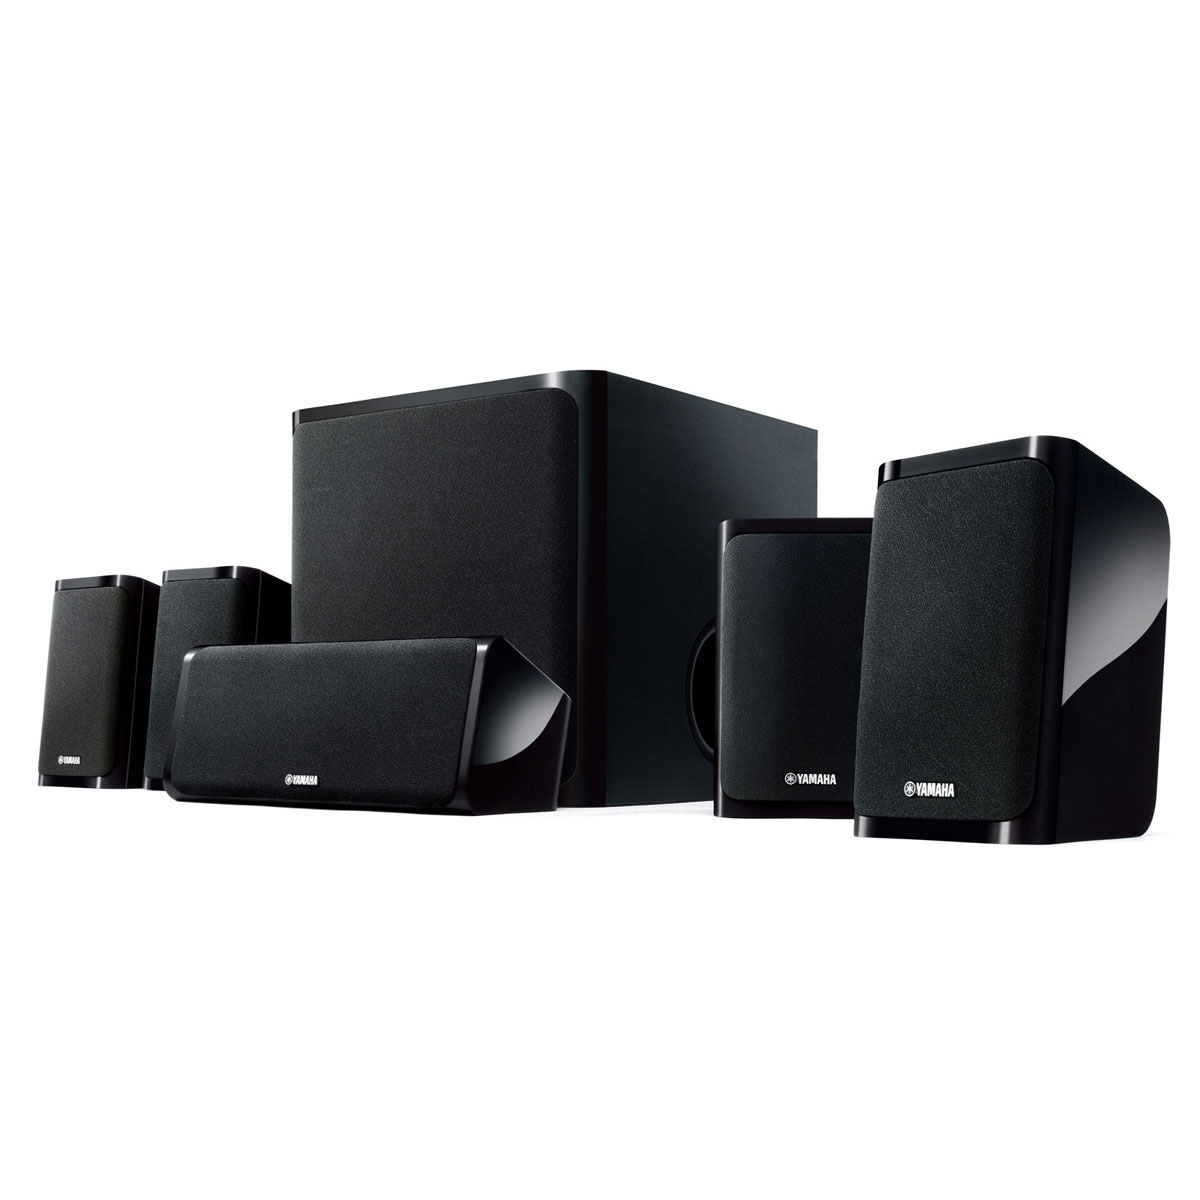 Sony Str Dh550 Subwoofer Hookup How To Hook Up Receiver Need Help Hooking Reciever